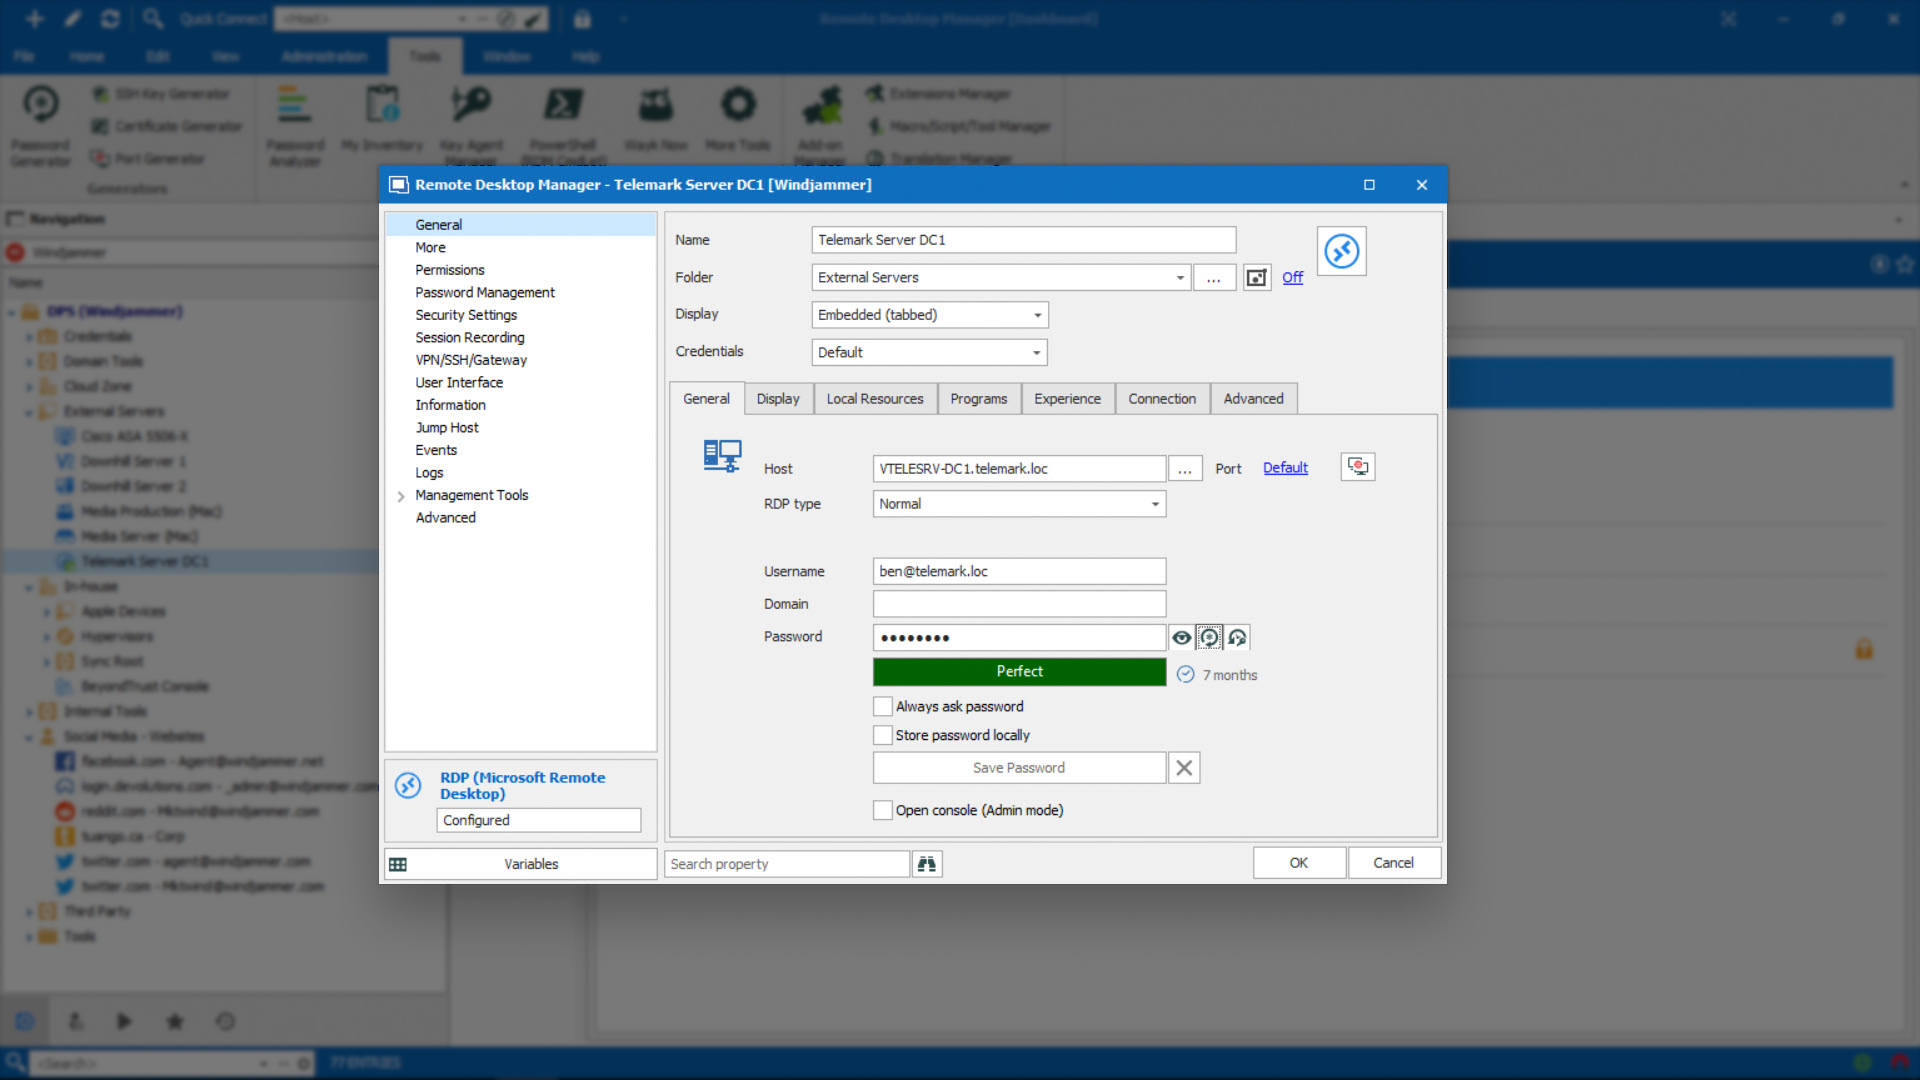 Fully Customize Entries to Suit Your Needs - Remote Desktop Manager